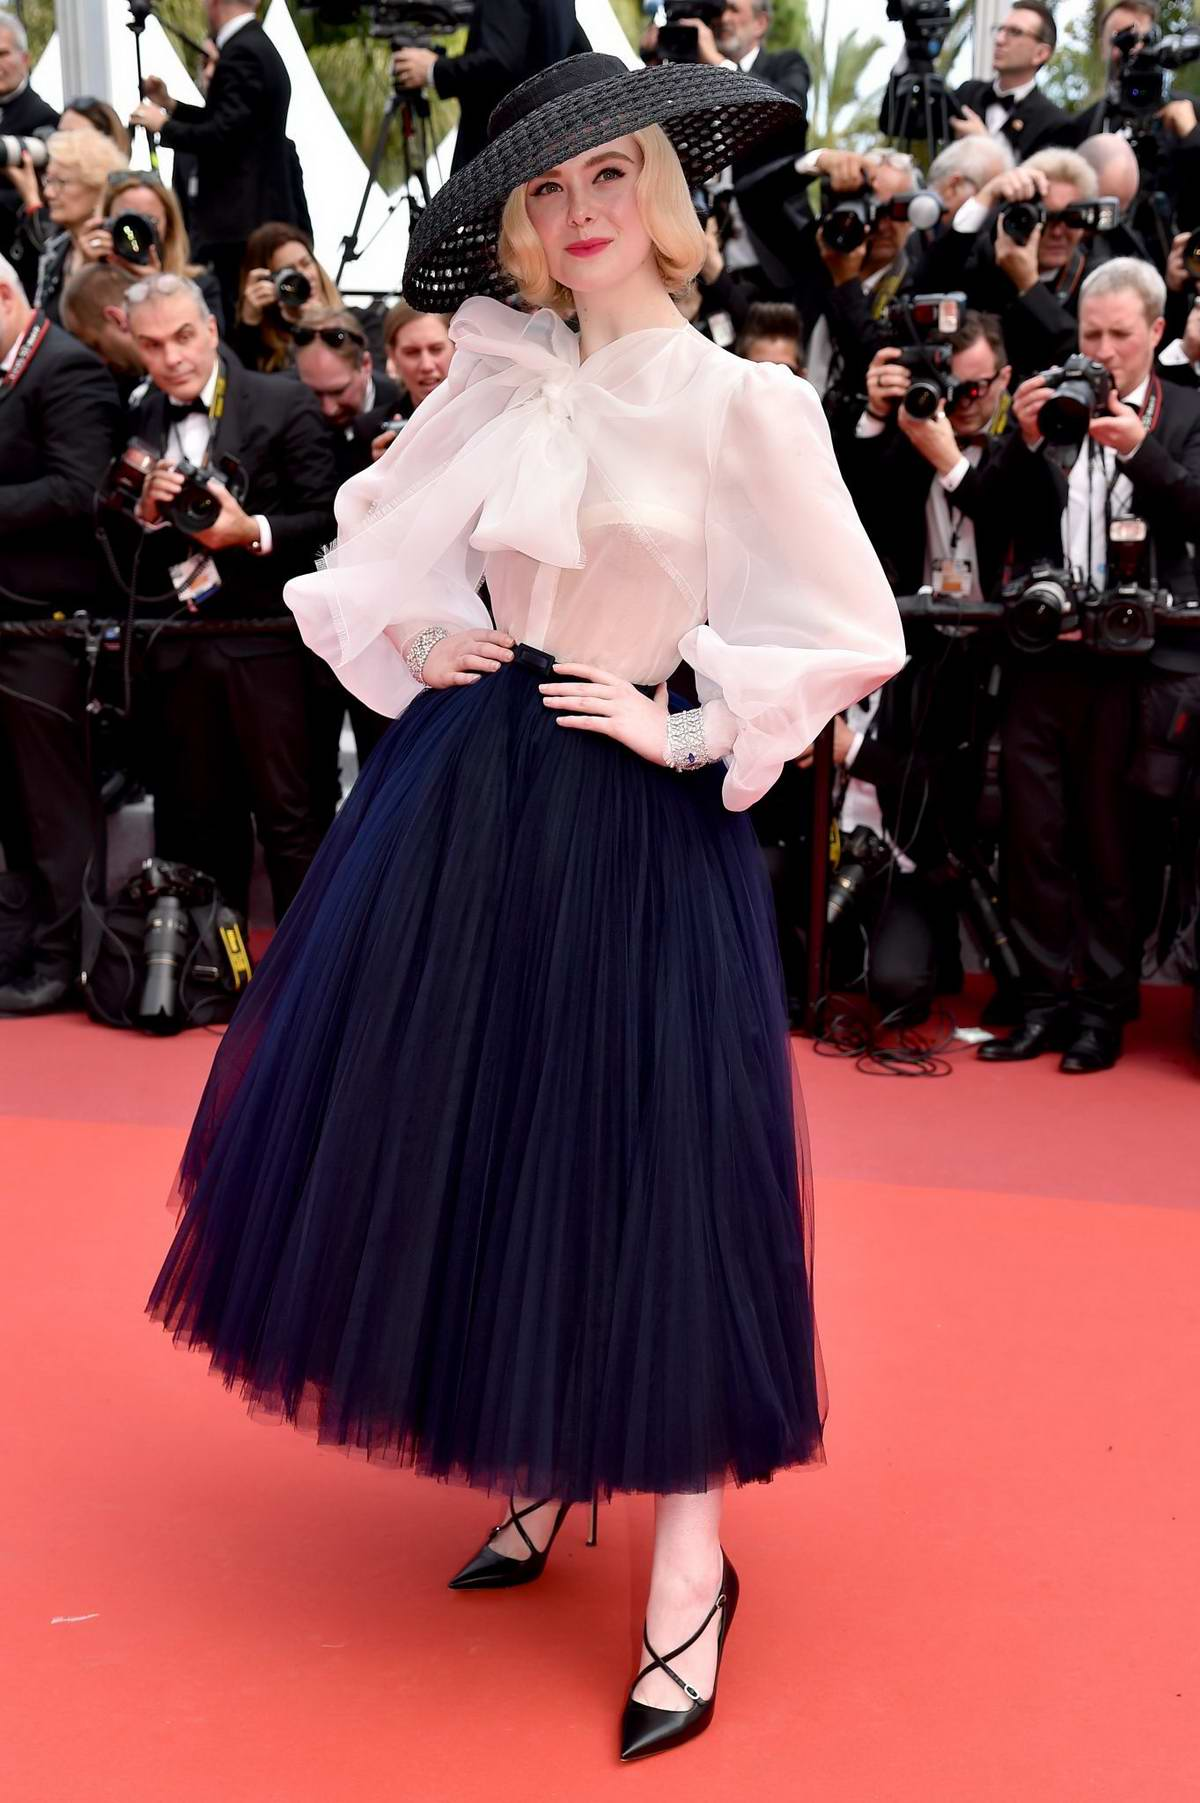 Elle Fanning attends the screening of 'Once Upon A Time In Hollywood' during the 72nd annual Cannes Film Festival in Cannes, France